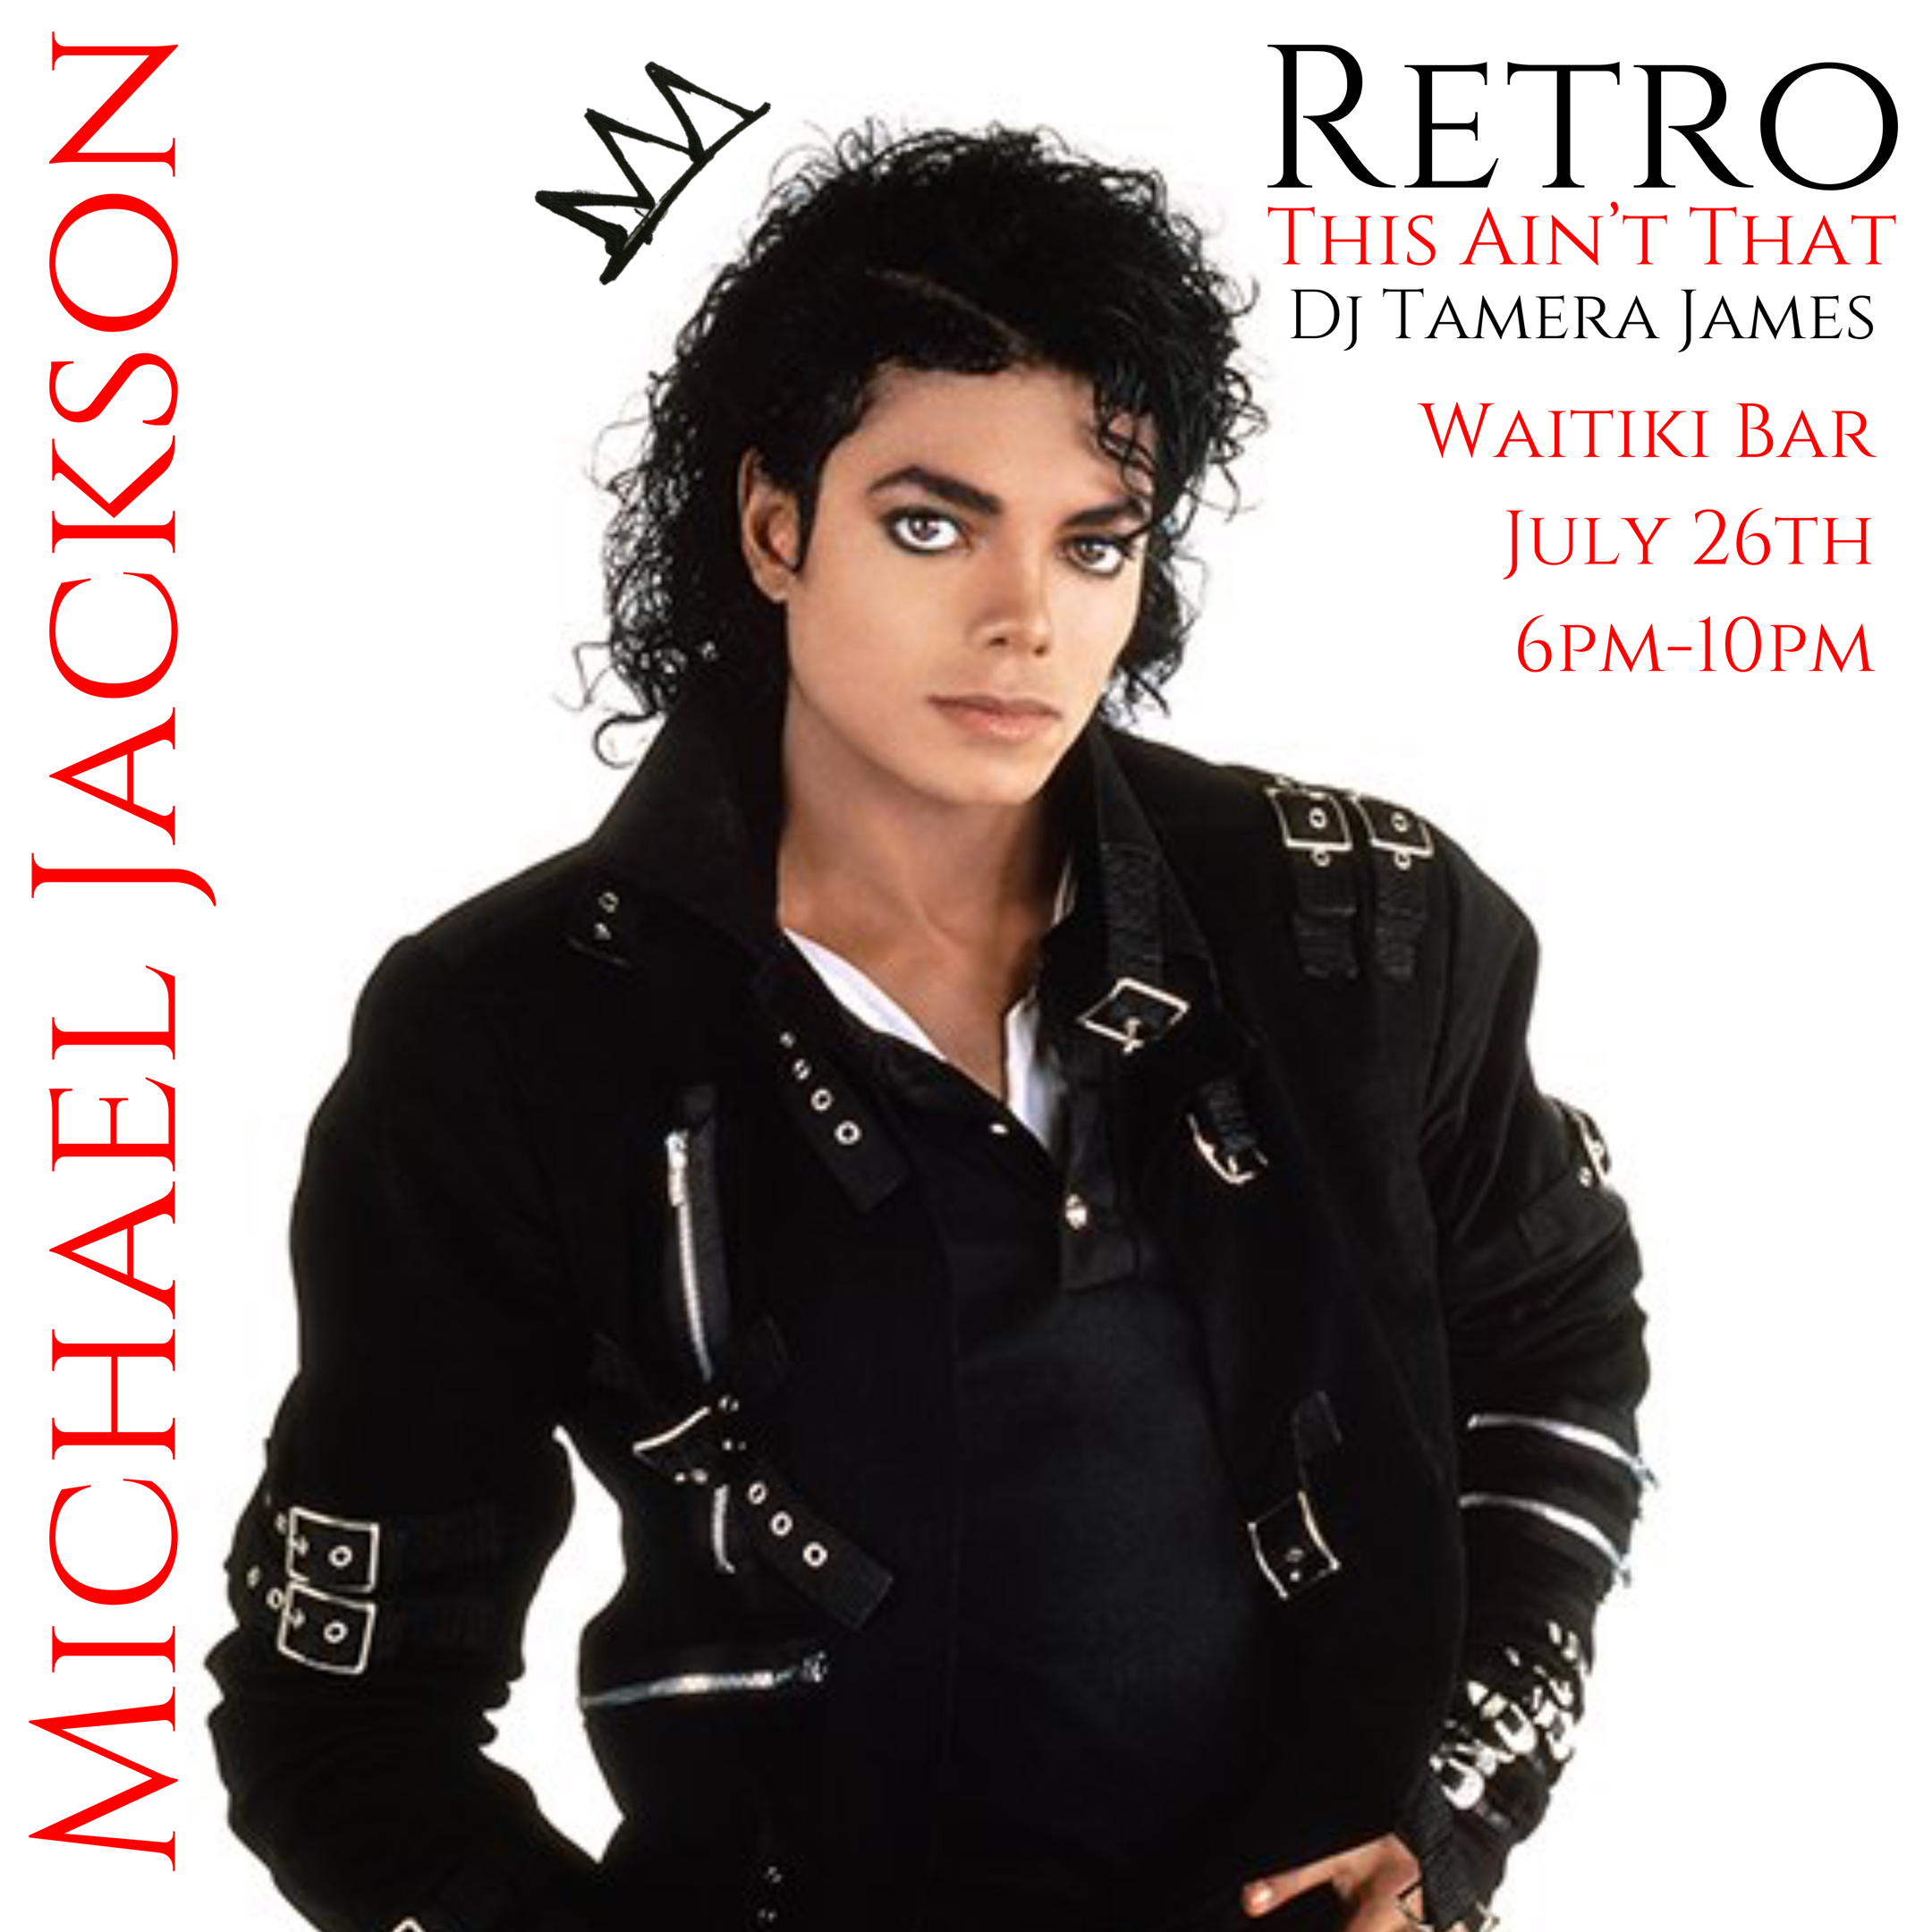 Retro Happy Hour Presents: The King Of Pop -Michael Jackson